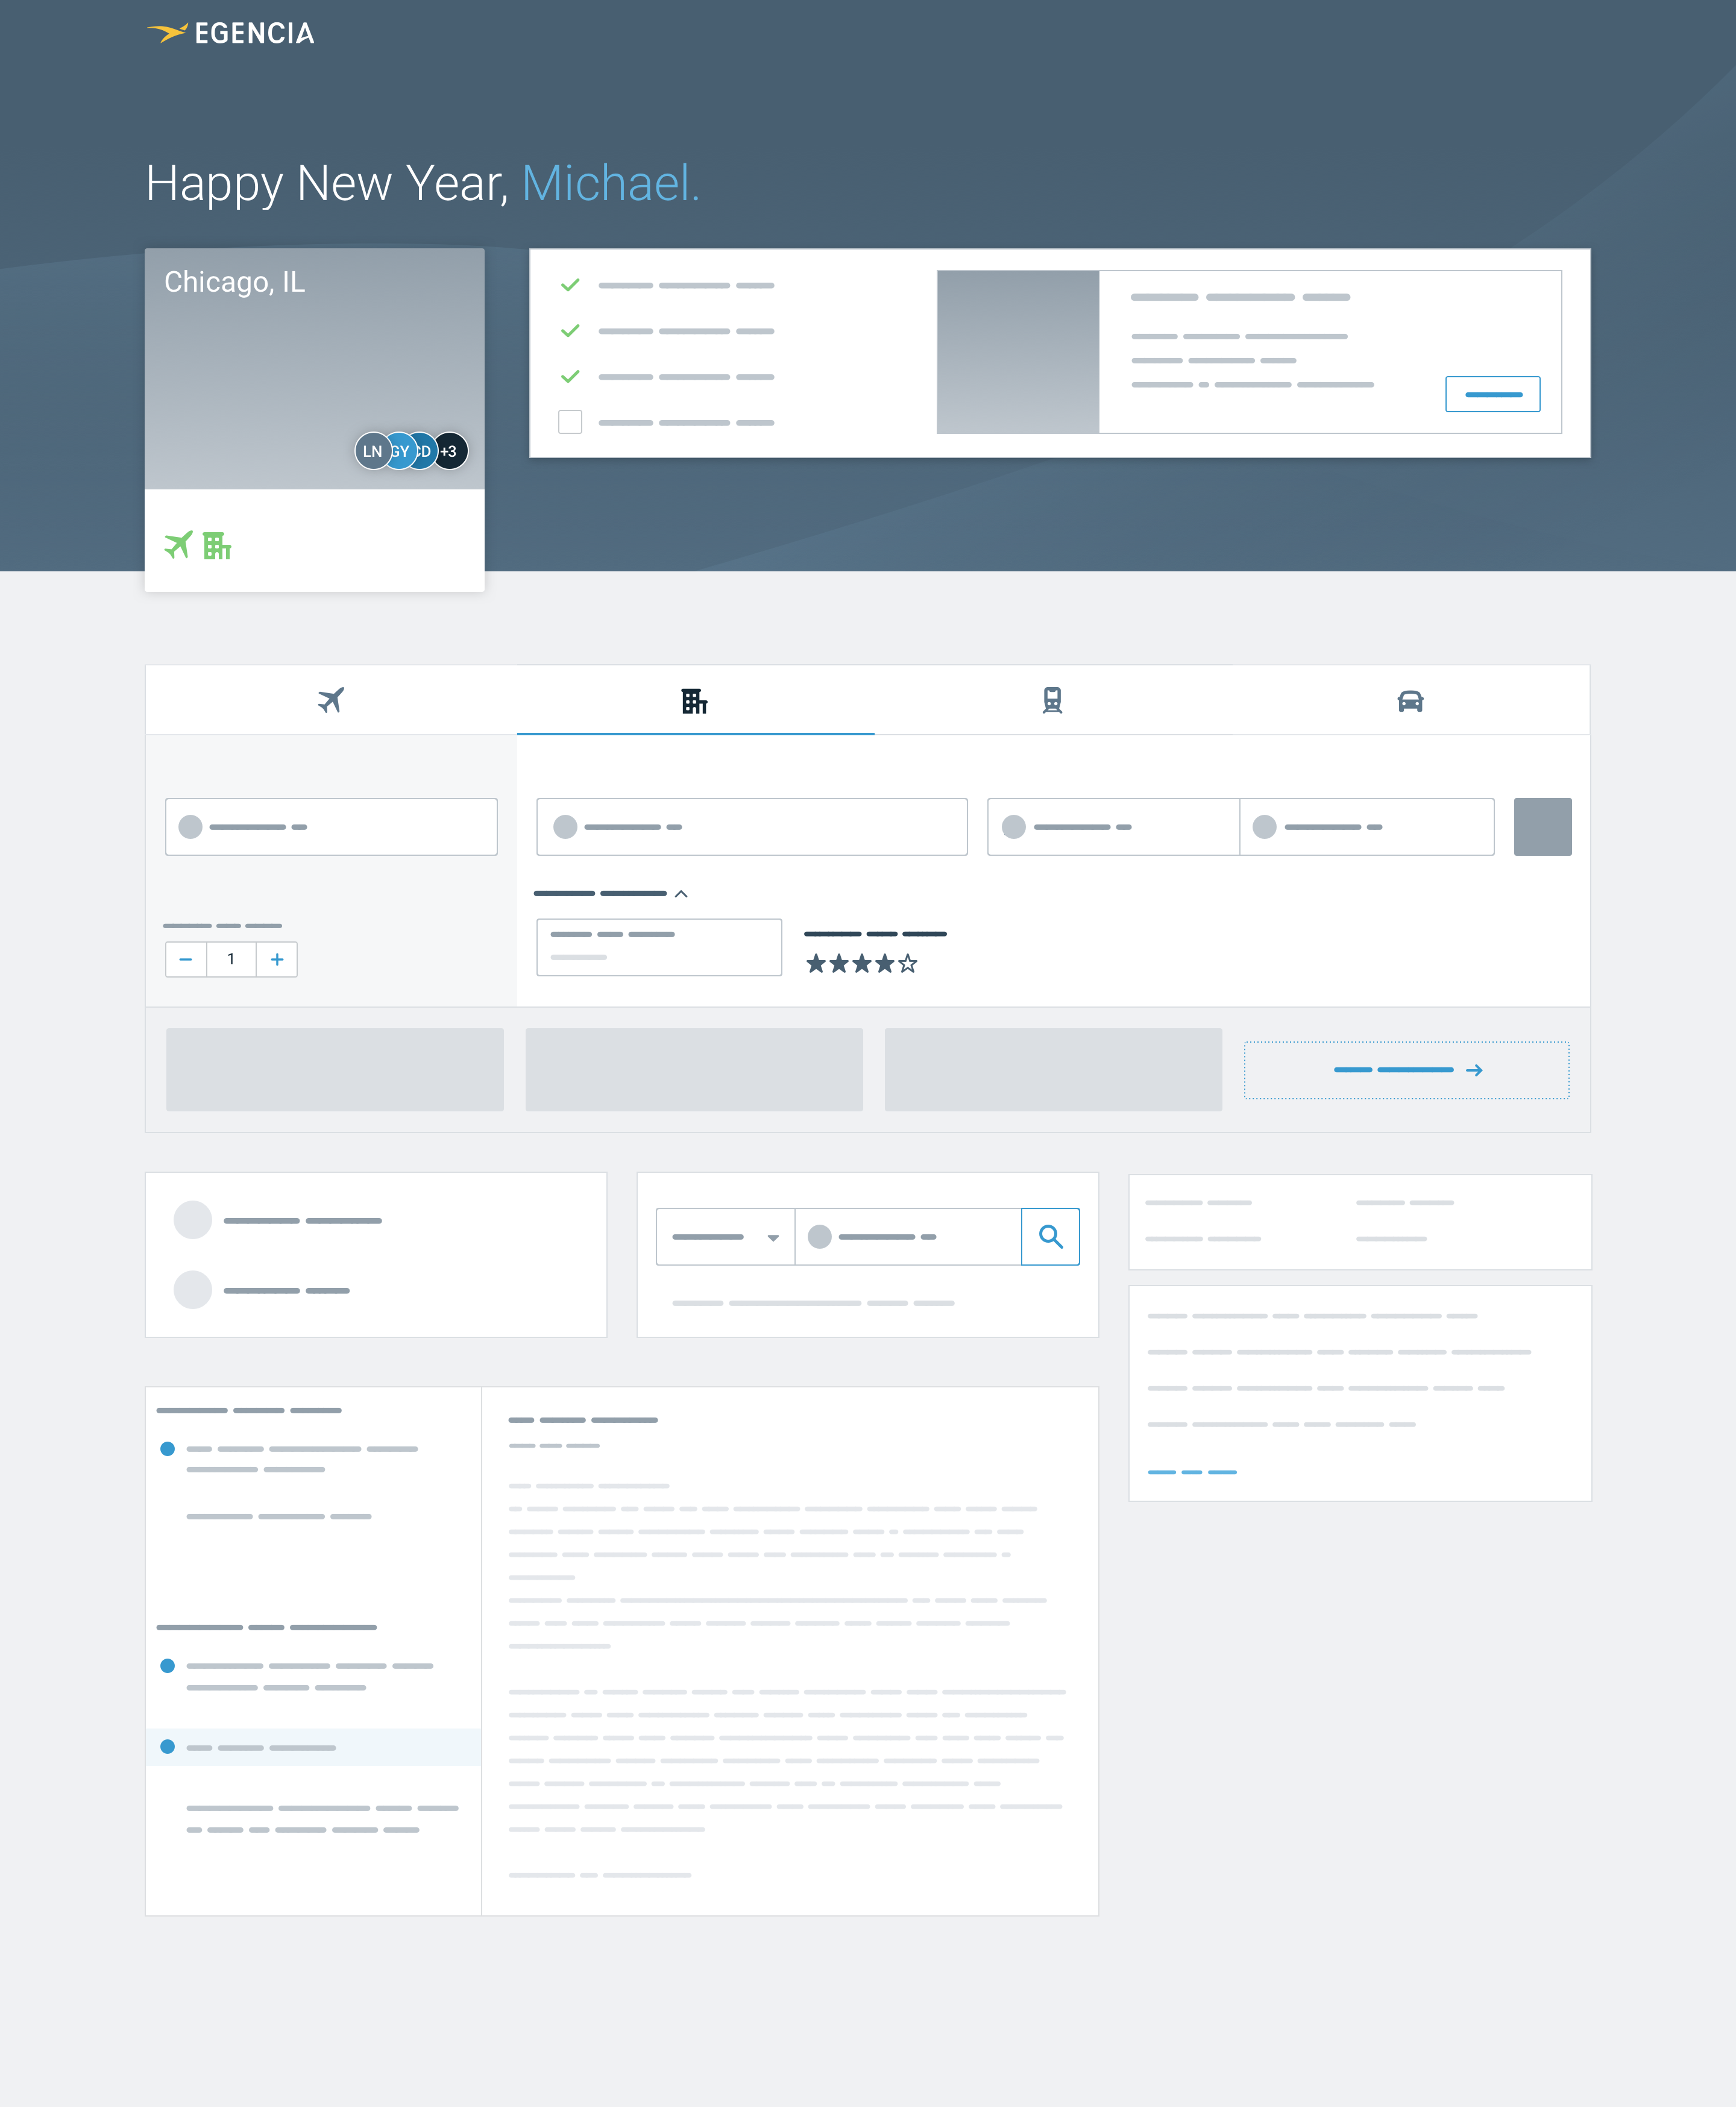 High fidelity wireframe of a new design for the homepage with upcoming trip checklist at the top of the page